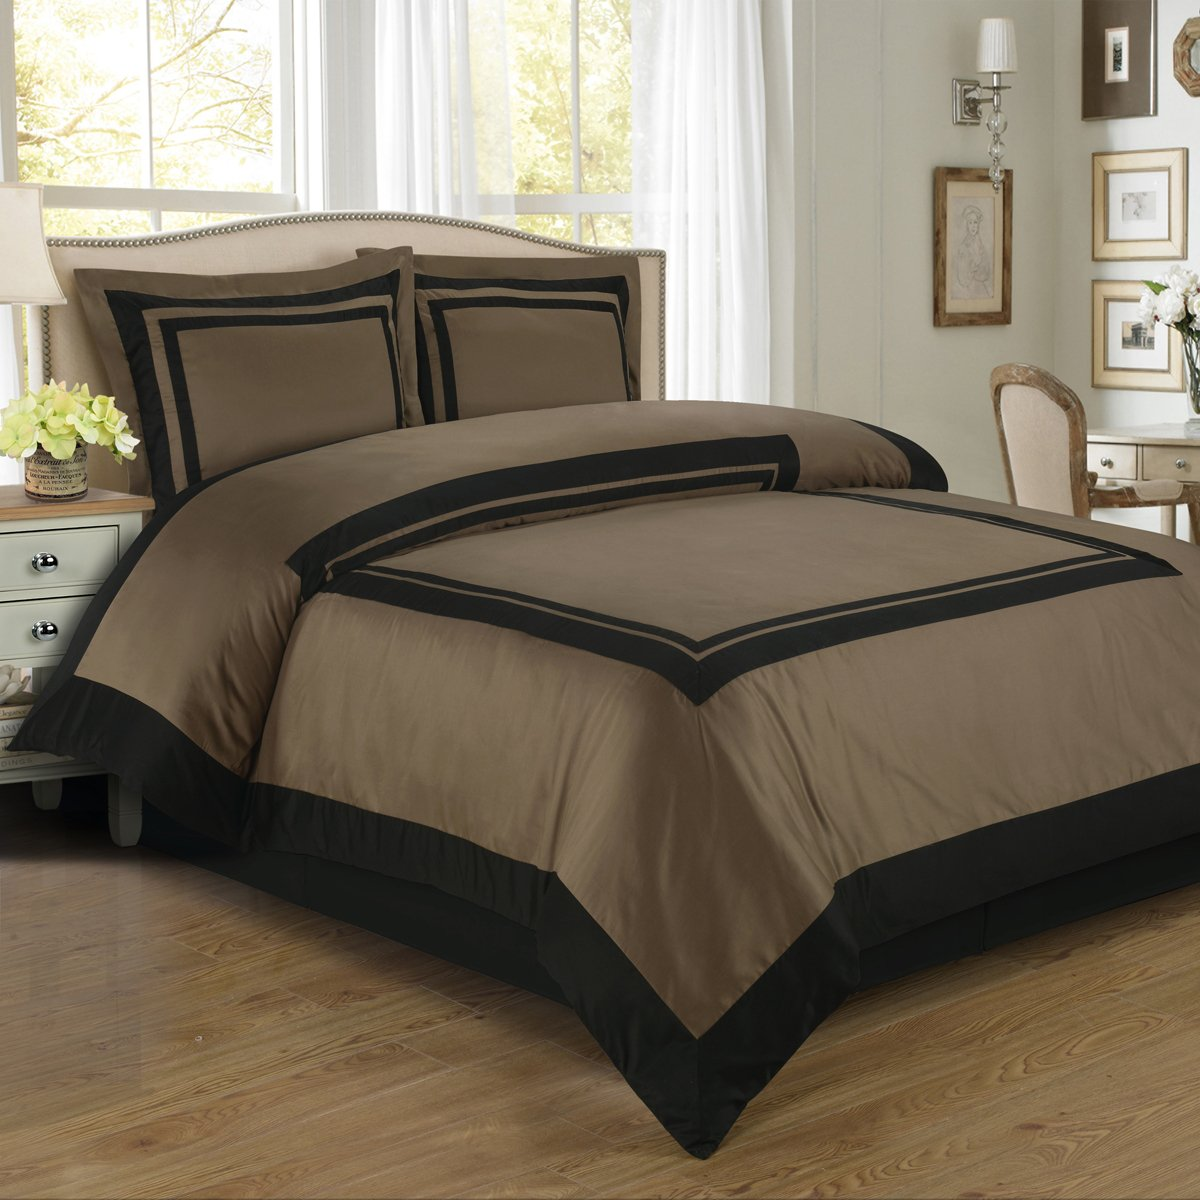 Reversible Hotel Duvet Cover Set